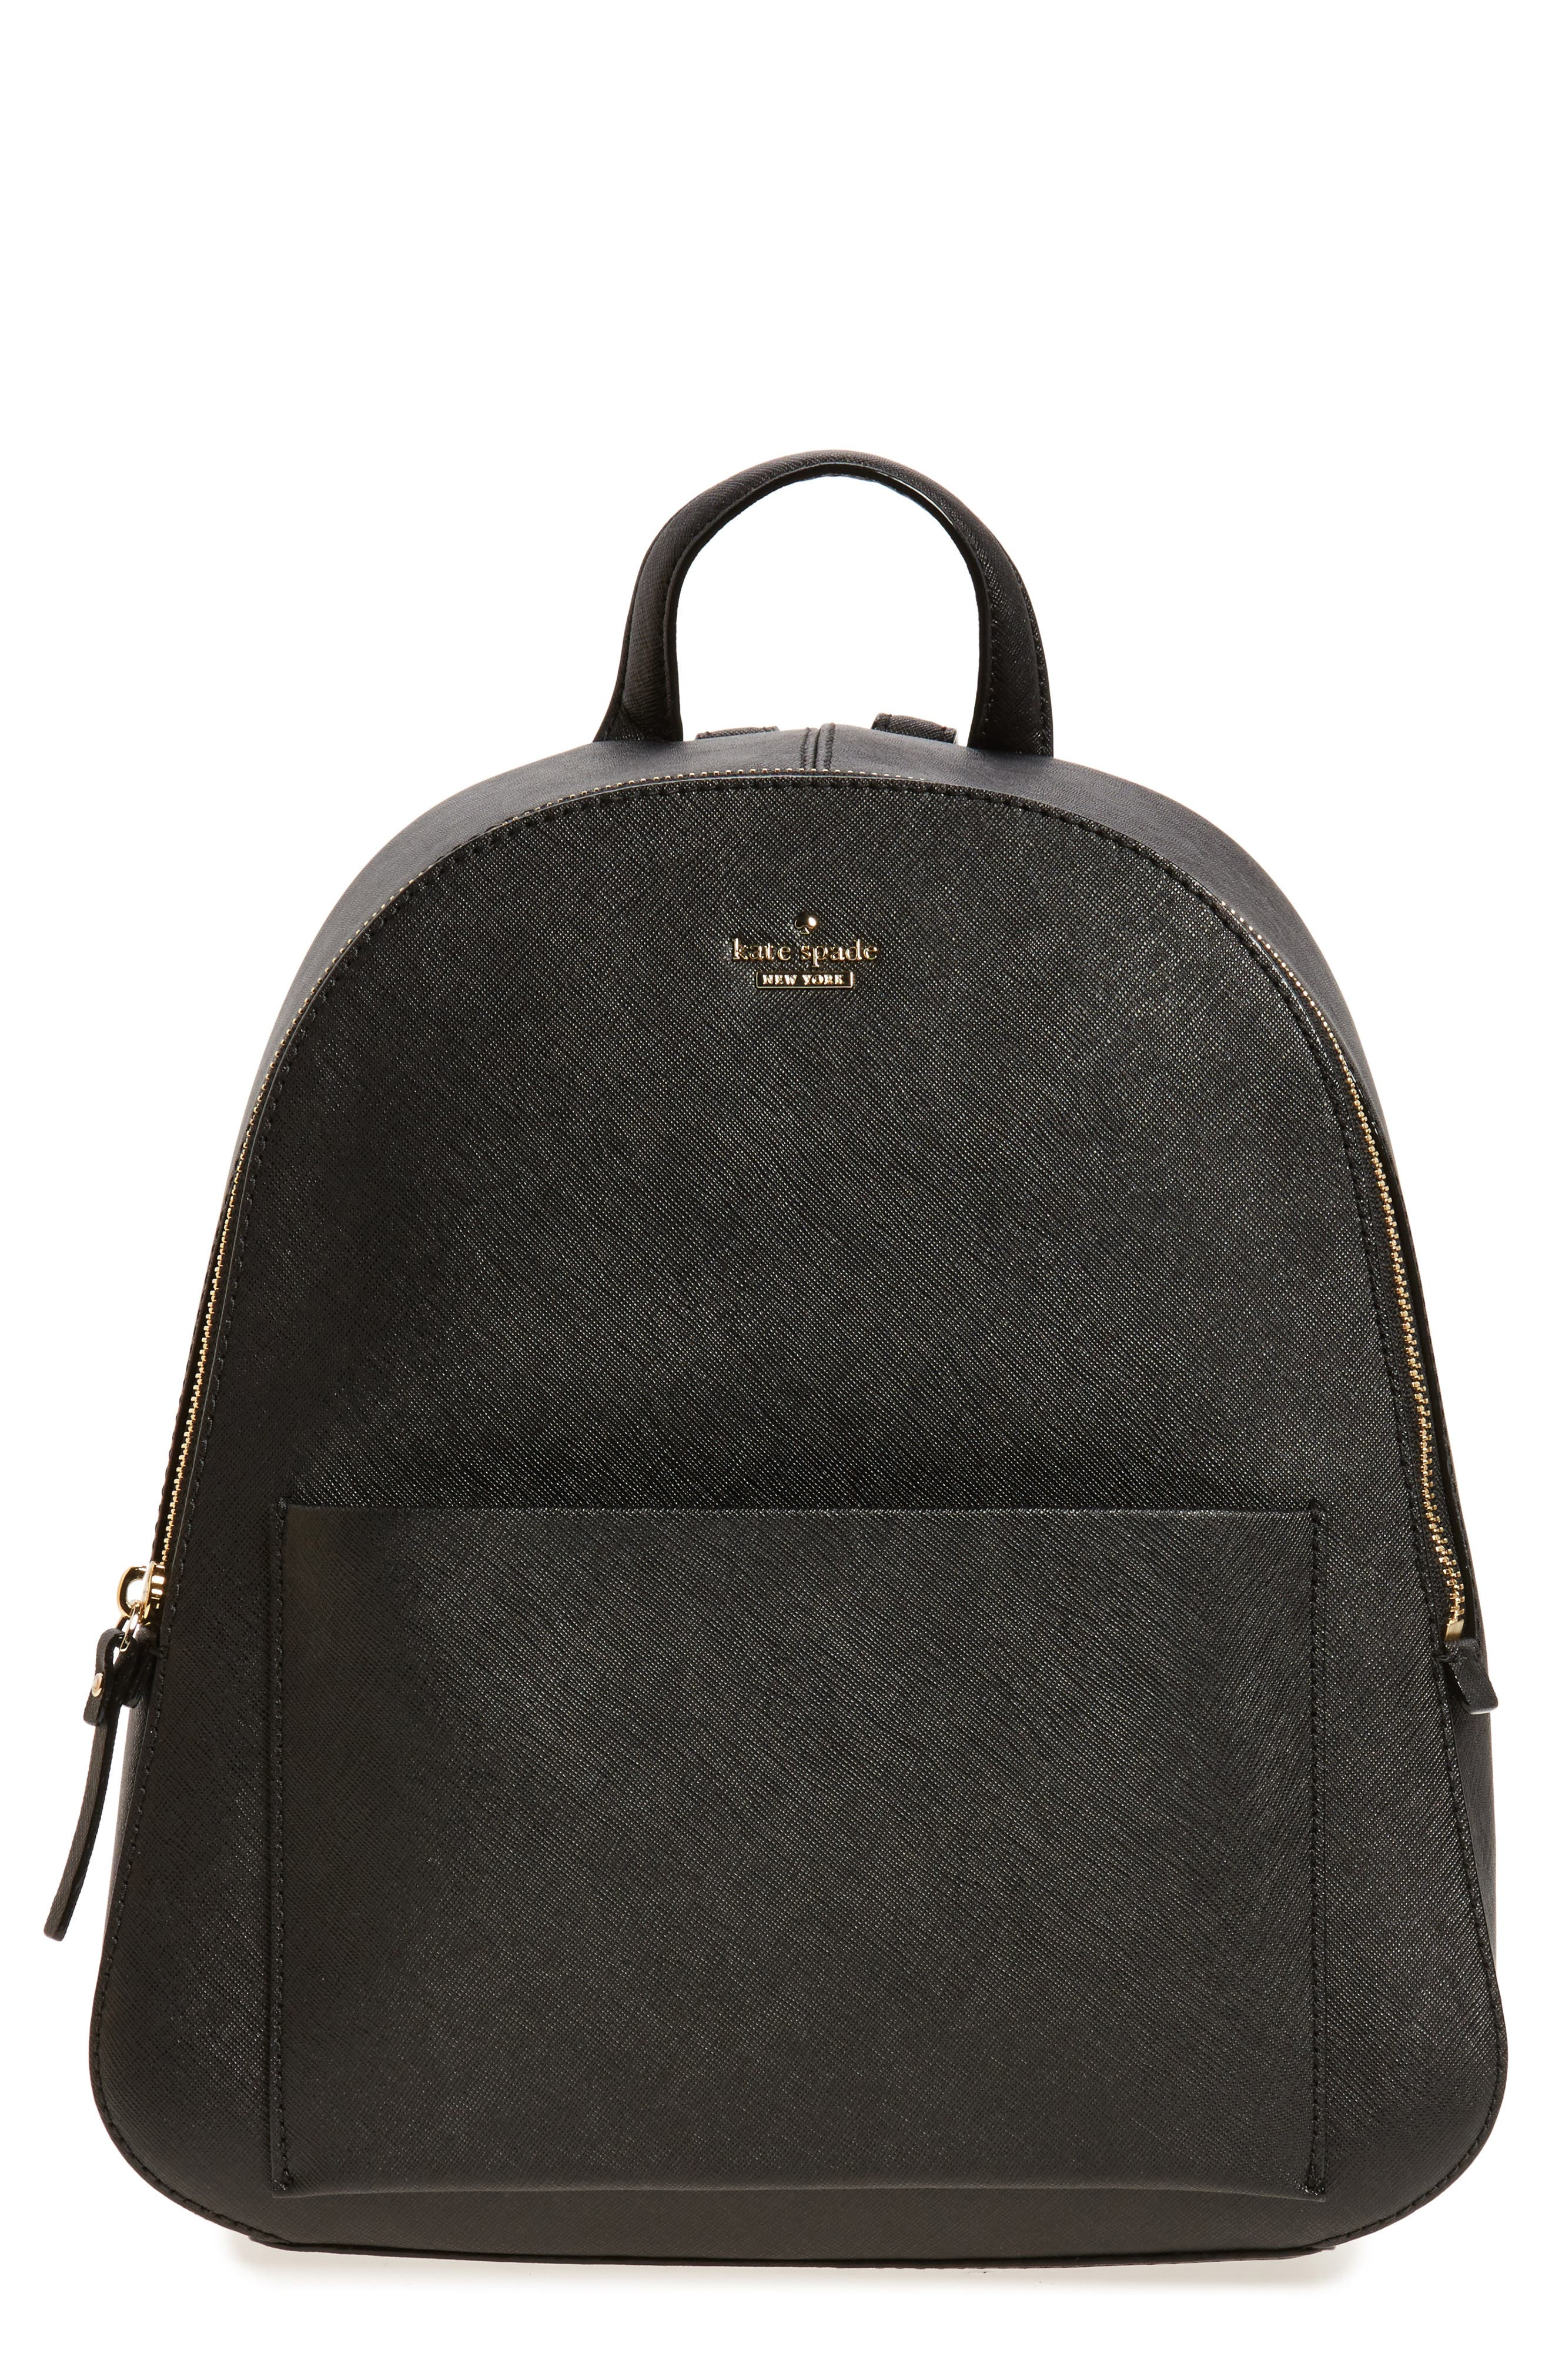 Main Image - kate spade new york cameron street marisole leather backpack